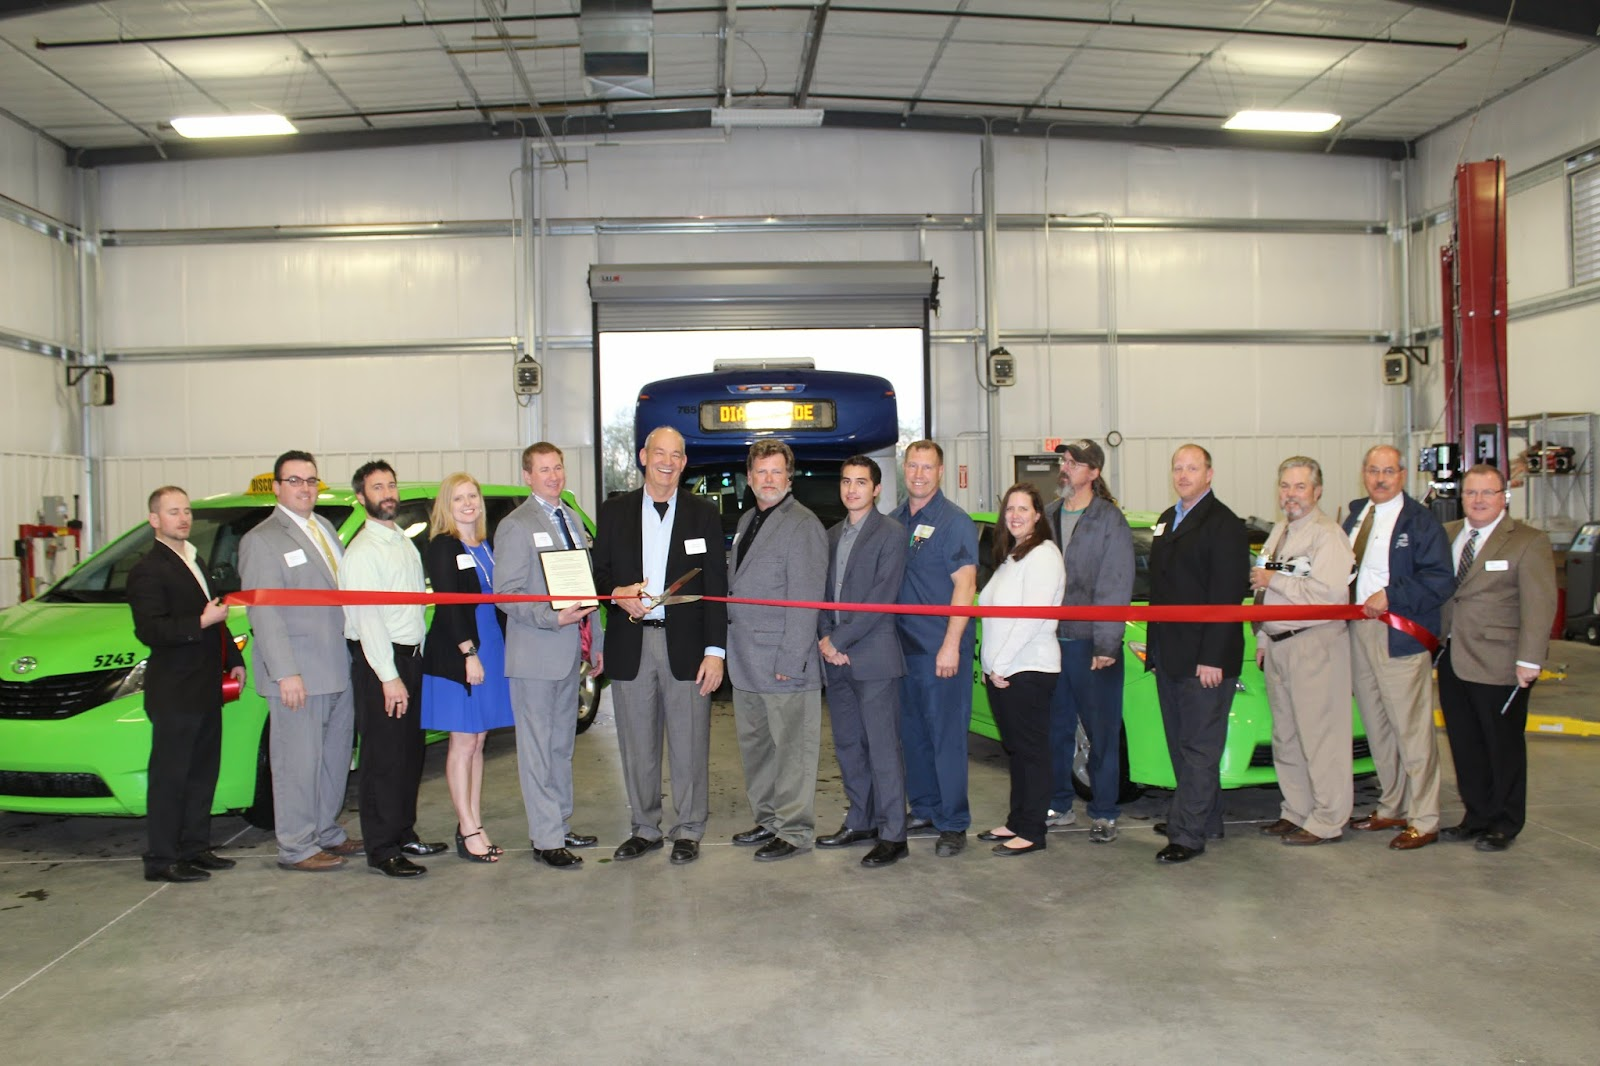 Total Transit would like to thank everyone who attended their Ribbon Cutting on Thursday, January 8. They are truly excited to continue to serve the Tucson community with a new location and invest in expanded operations in the city.   Total Transit 829 W. Silverlake Road, 85713 200-2000